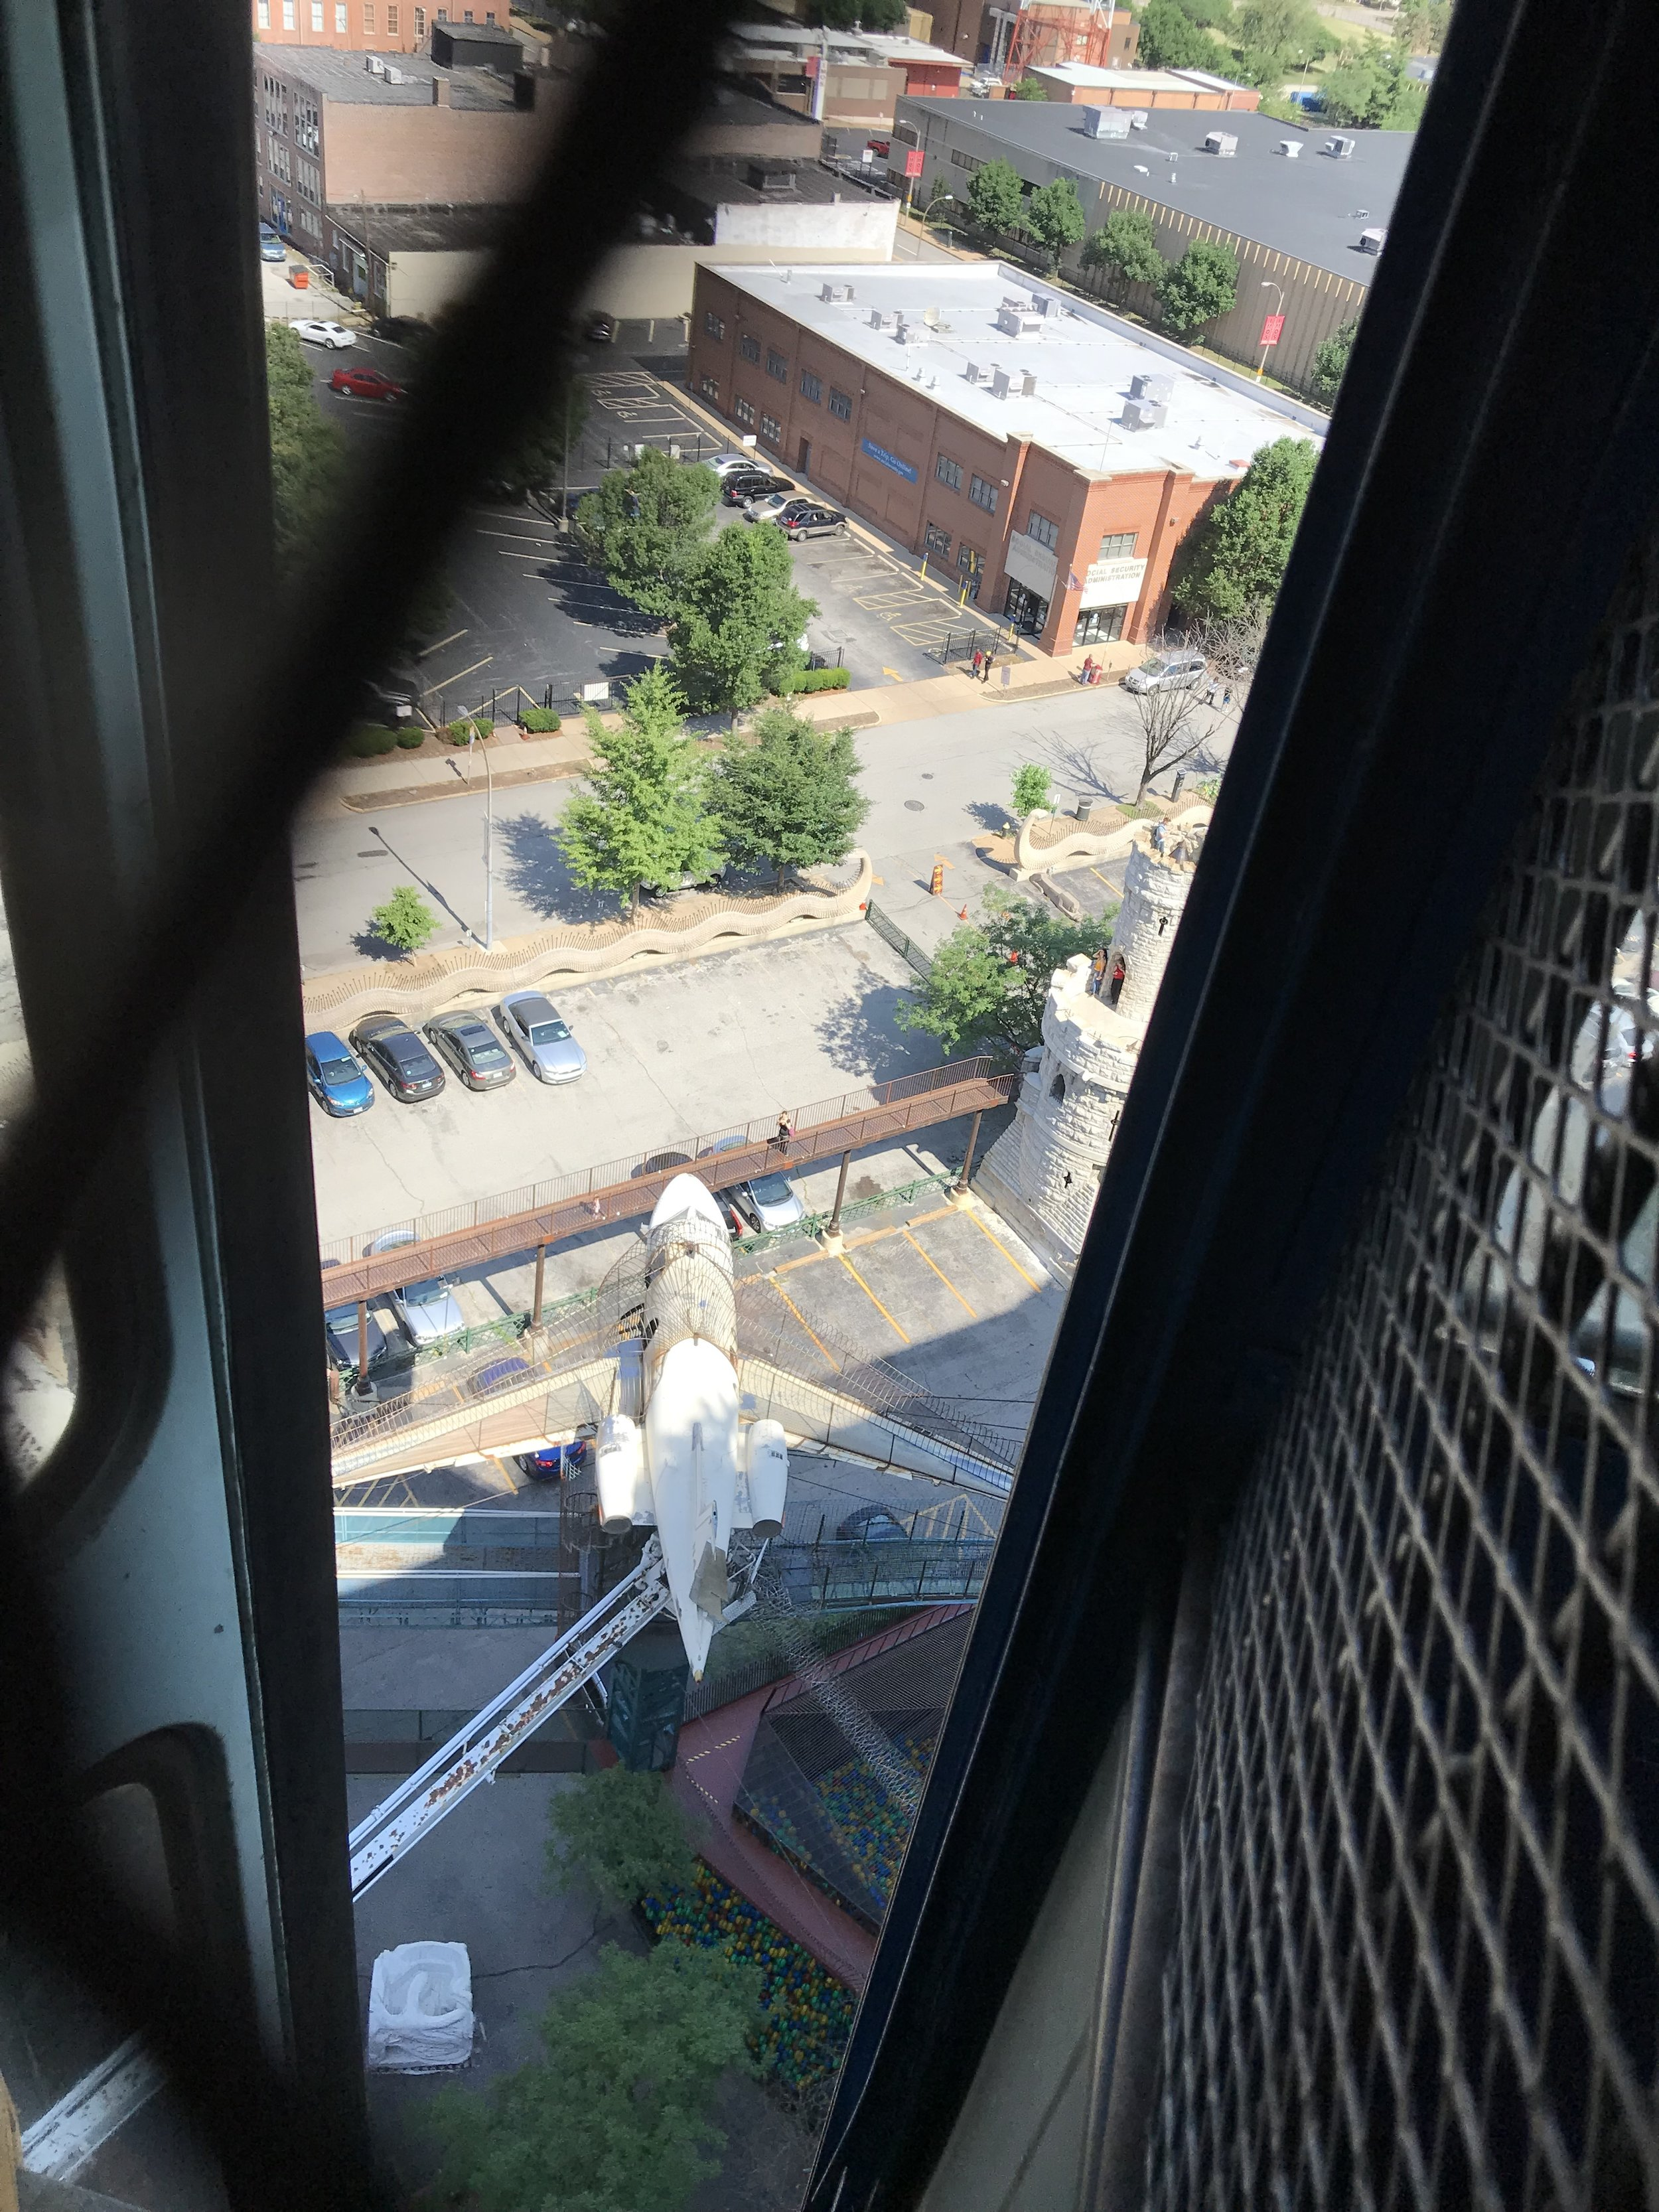 Our view from the door of the school bus that is half-suspended from the 11-story roof at the City Museum, looking out over the old airplane that people can also climb to- via a tunnel.